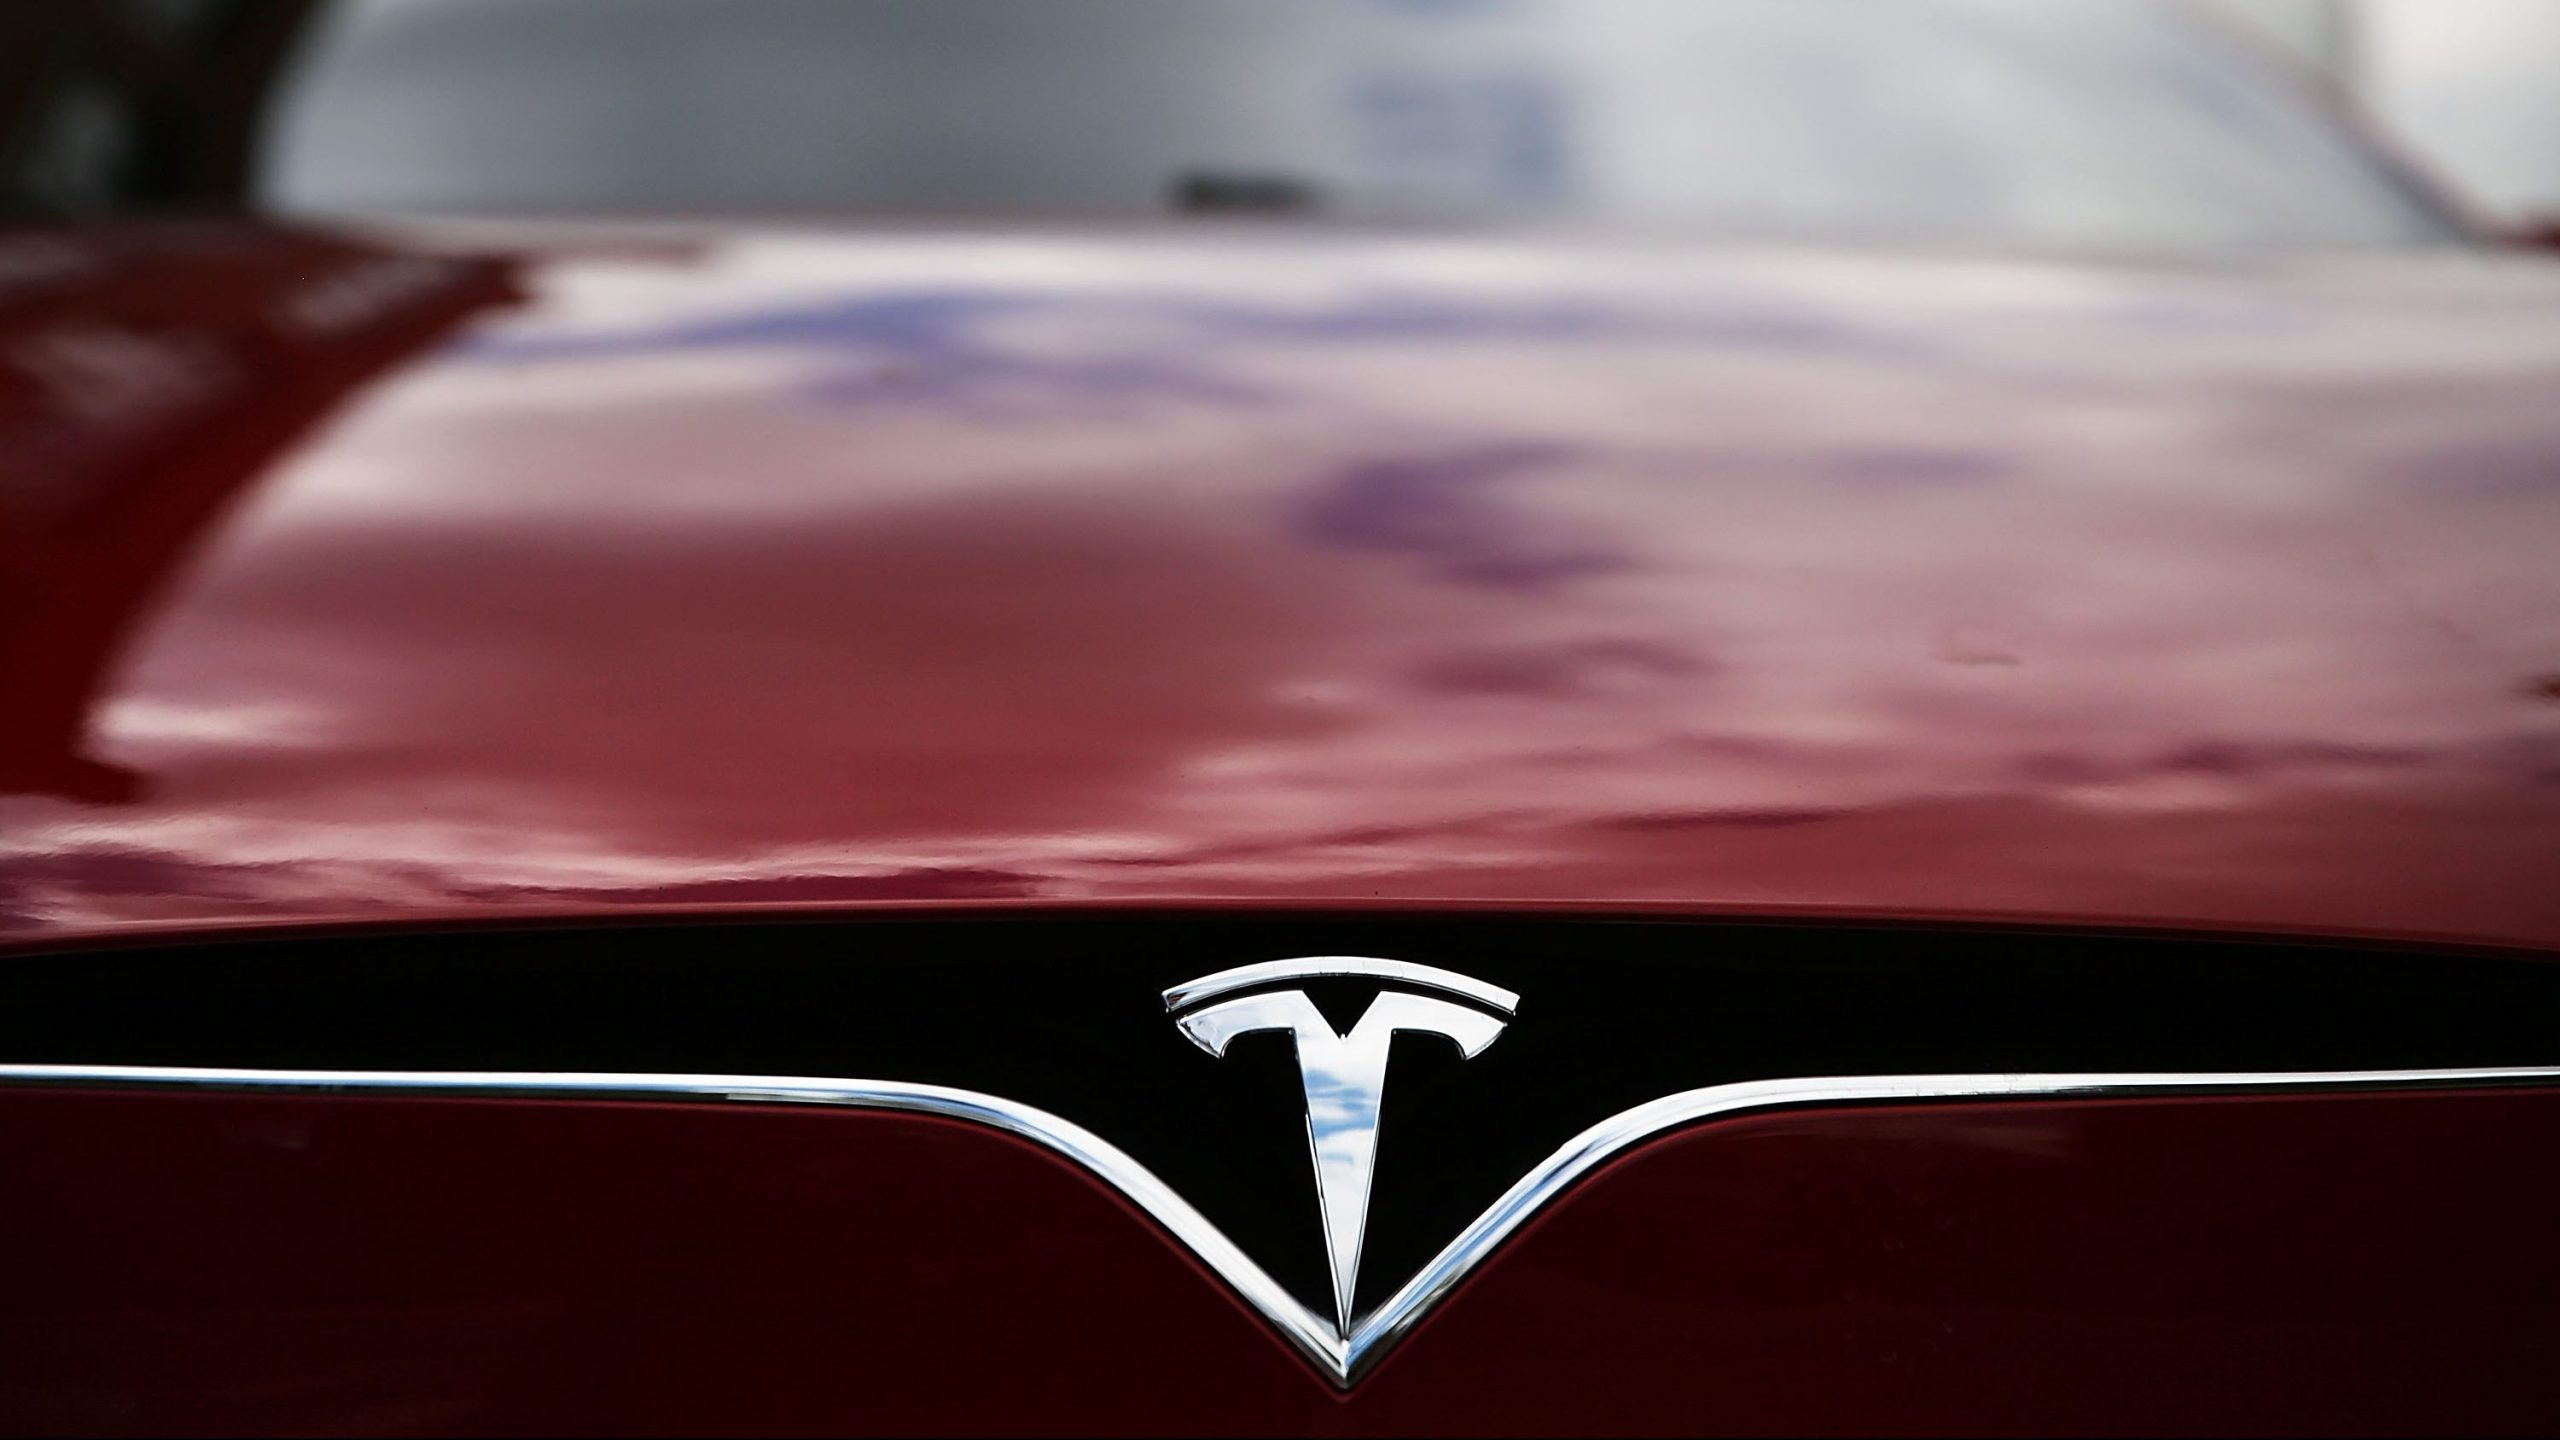 A Tesla model S sits parked outside of a new Tesla showroom and service center in Red Hook, Brooklyn, on July 5, 2016. (Spencer Platt / Getty Images)